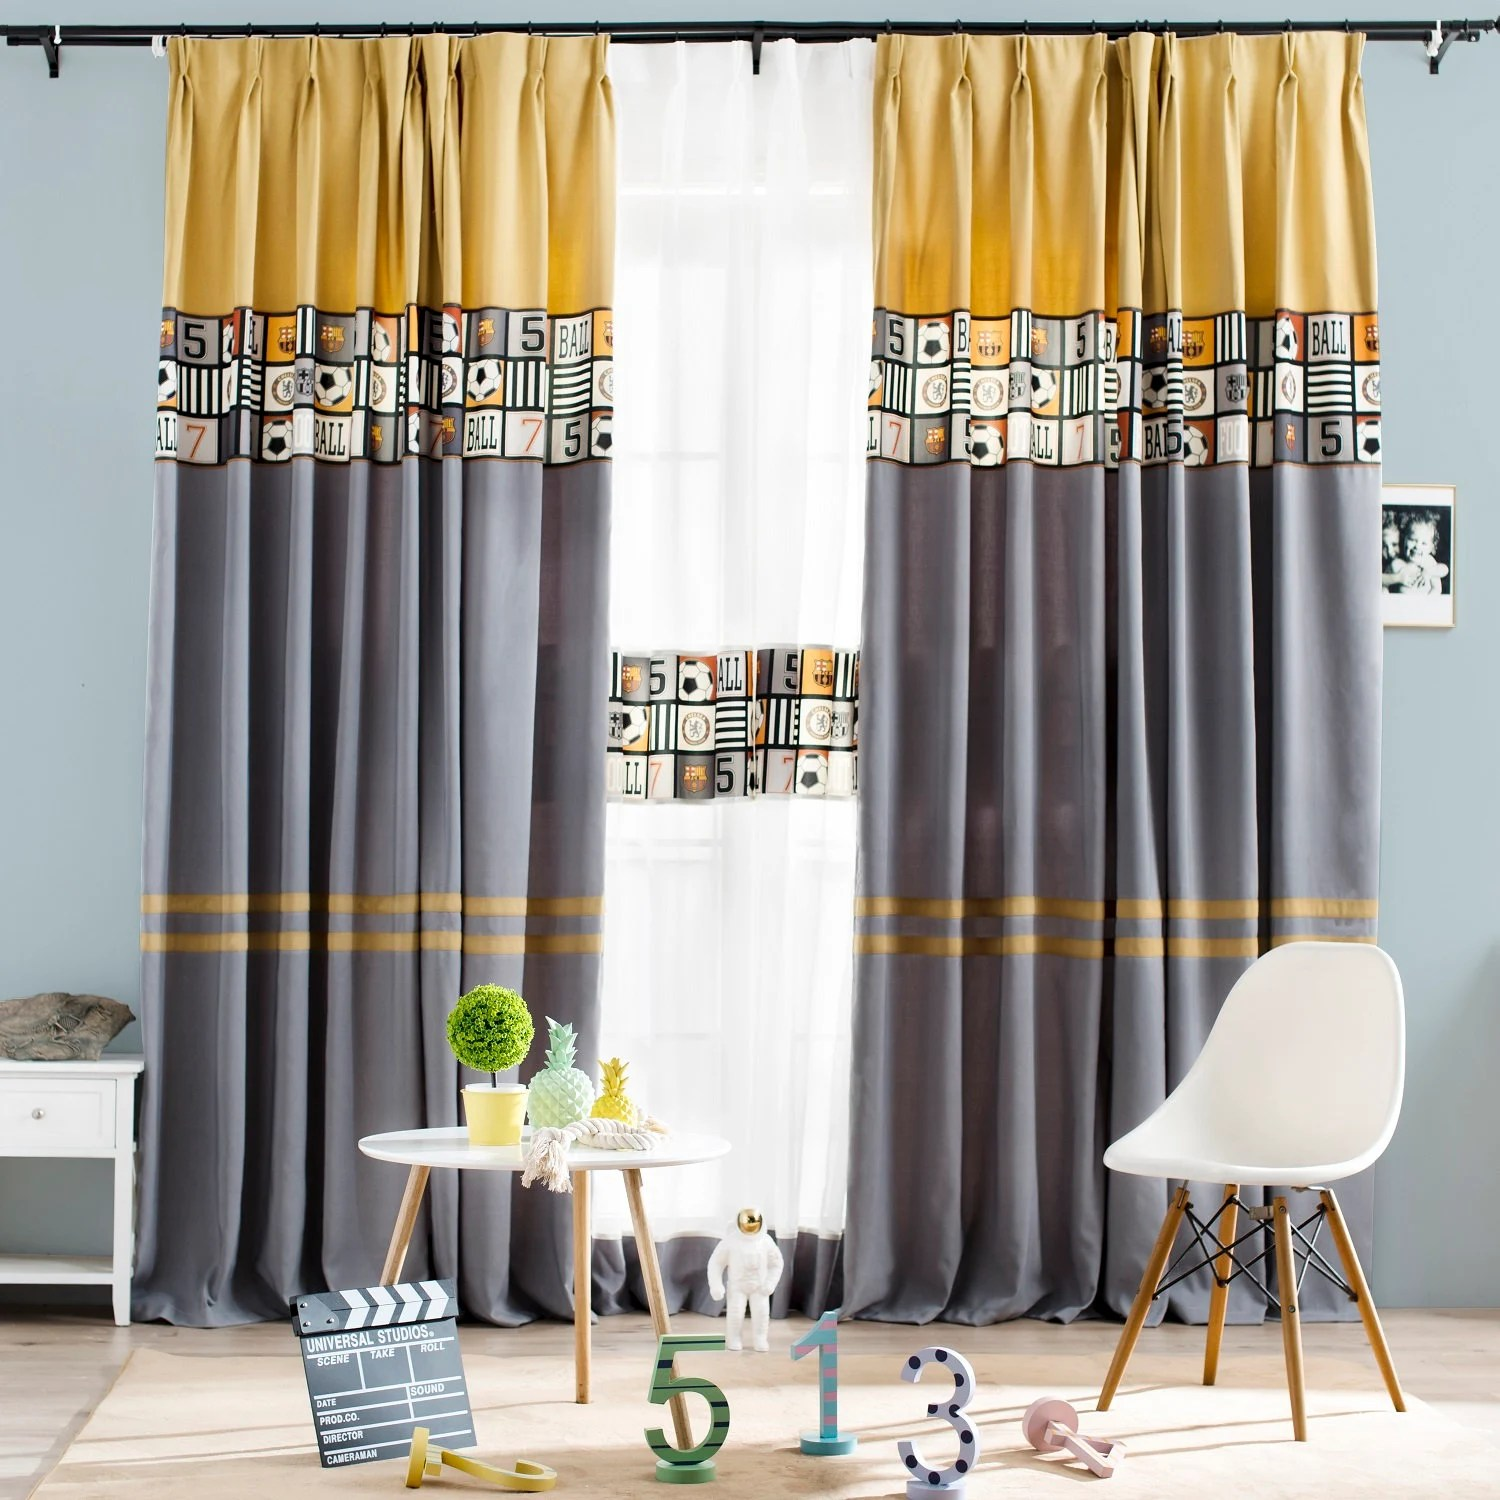 Privacy Curtain For Bedroom Curtain Panel Drape Curtain Boys Bedroom Window Curtain Blackout Privacy Curtain Earth Yellow And Gray Color Block With Football Pattern